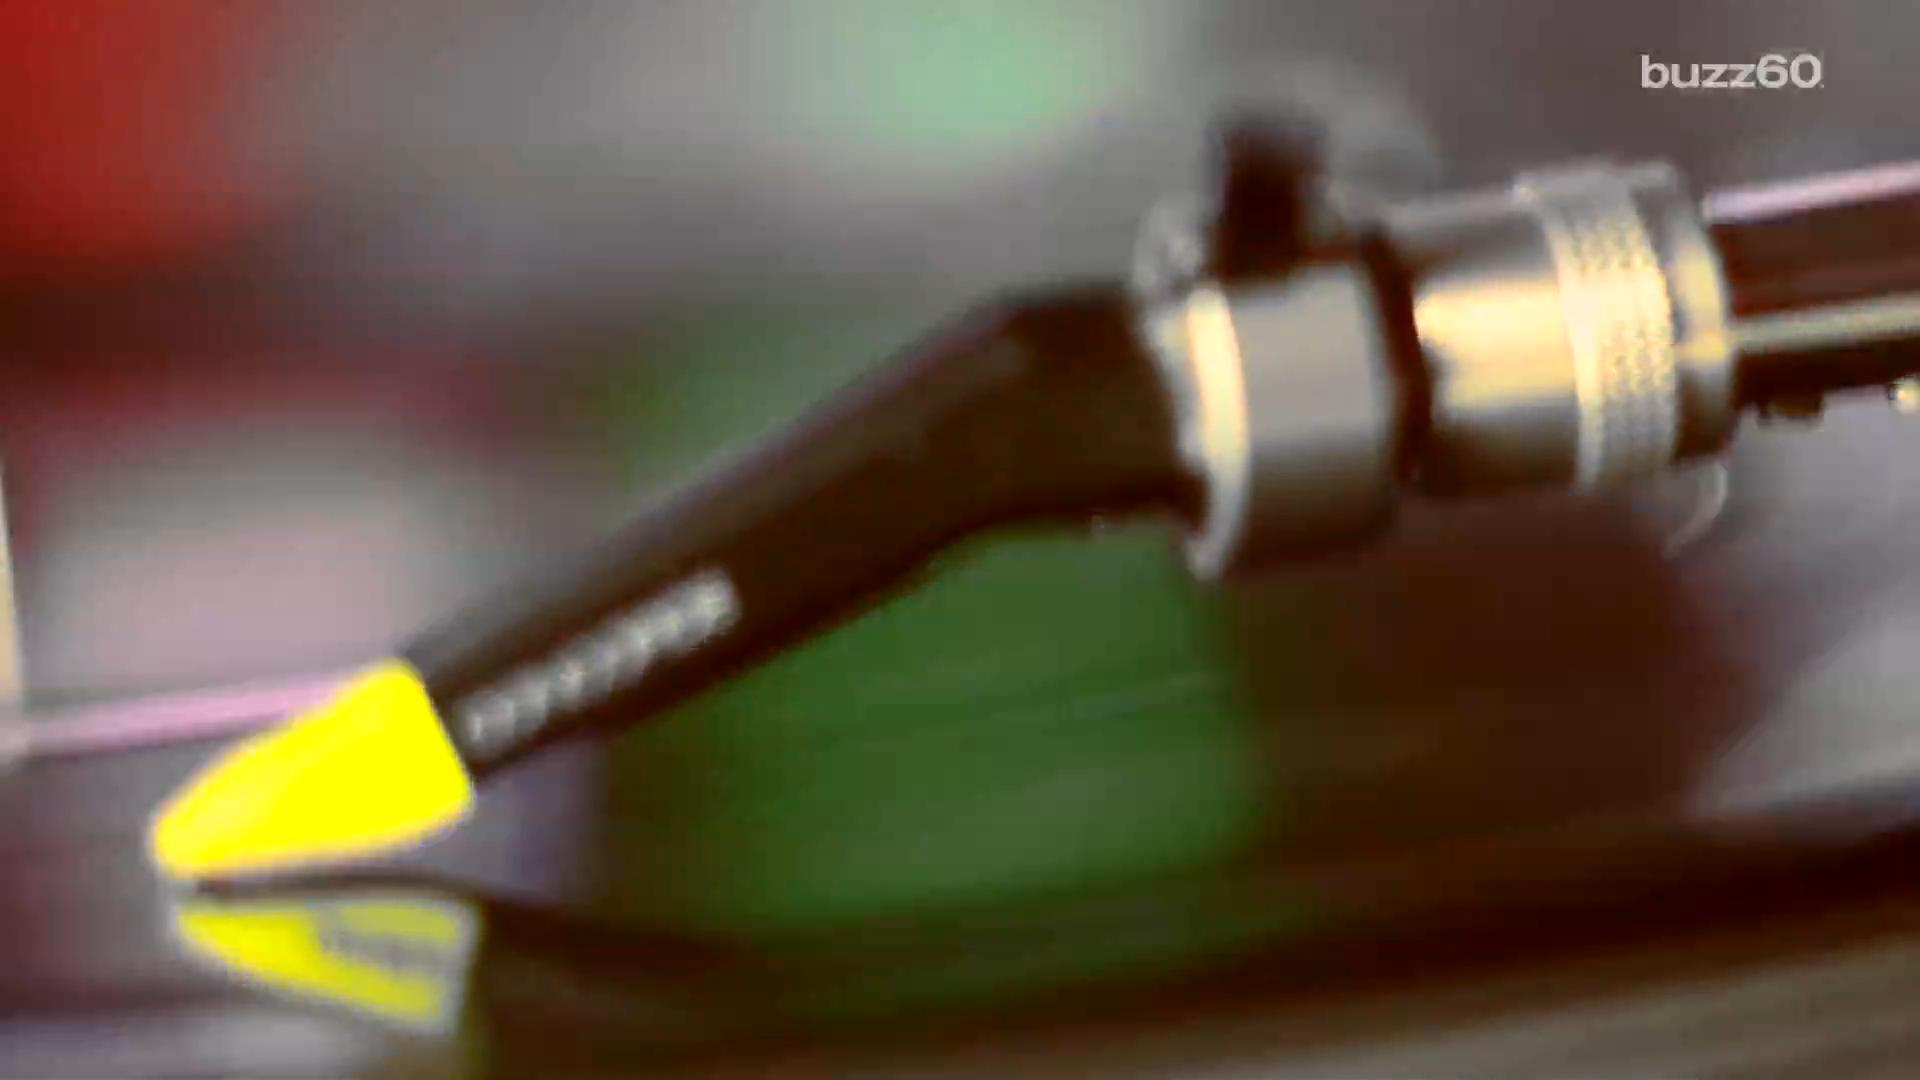 Why Turntables Are Making a Comeback